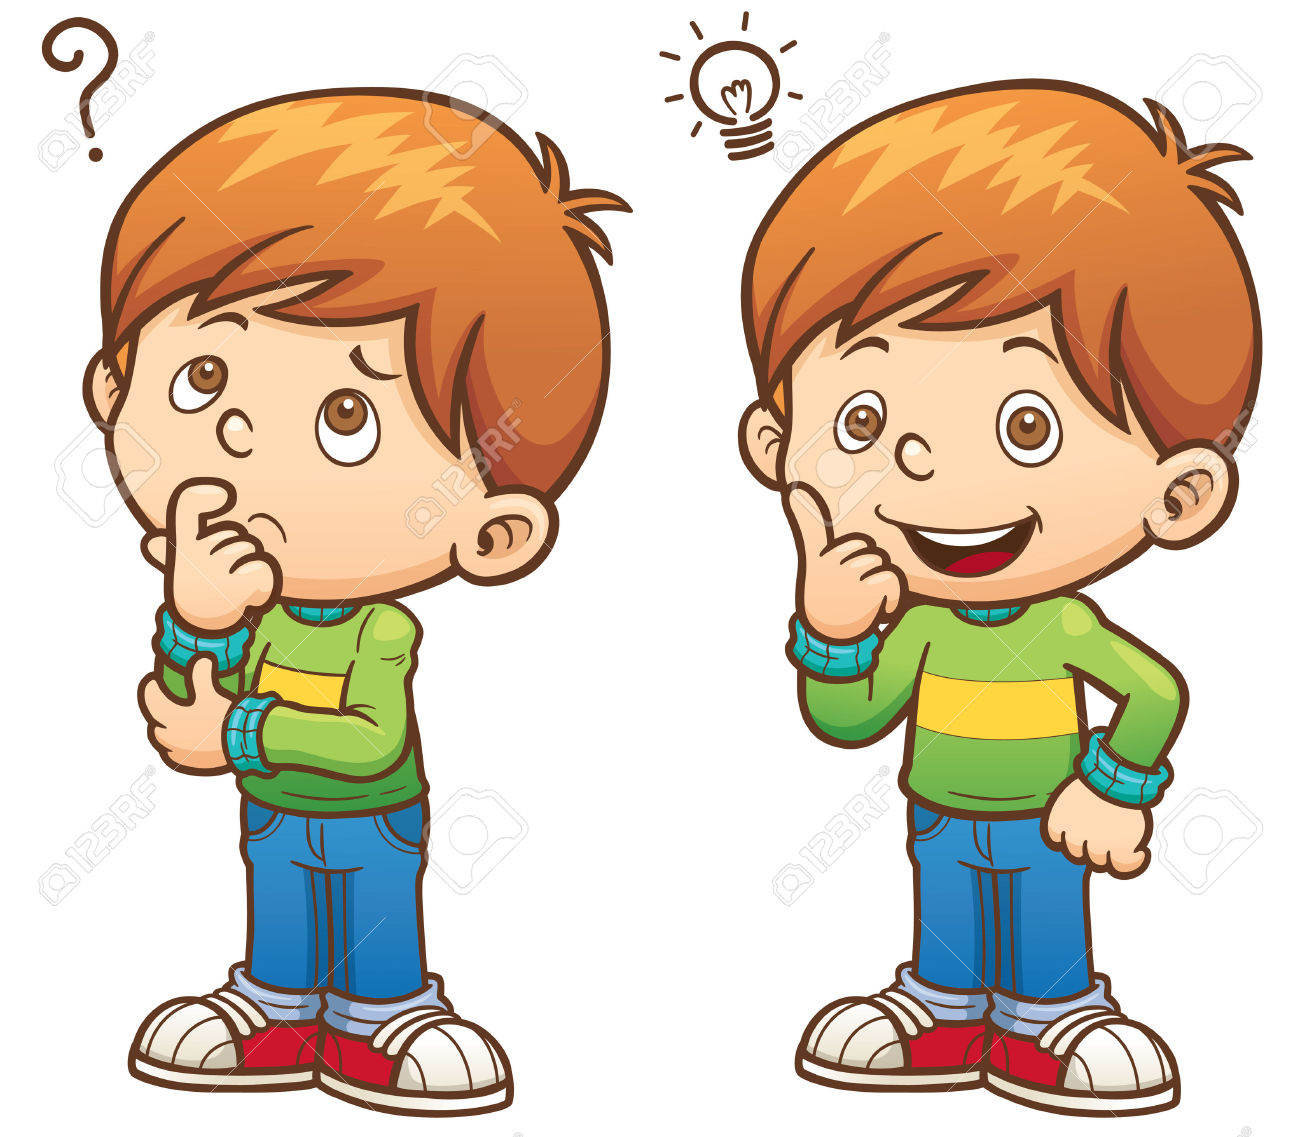 Boy thinking clipart 10 » Clipart Station.